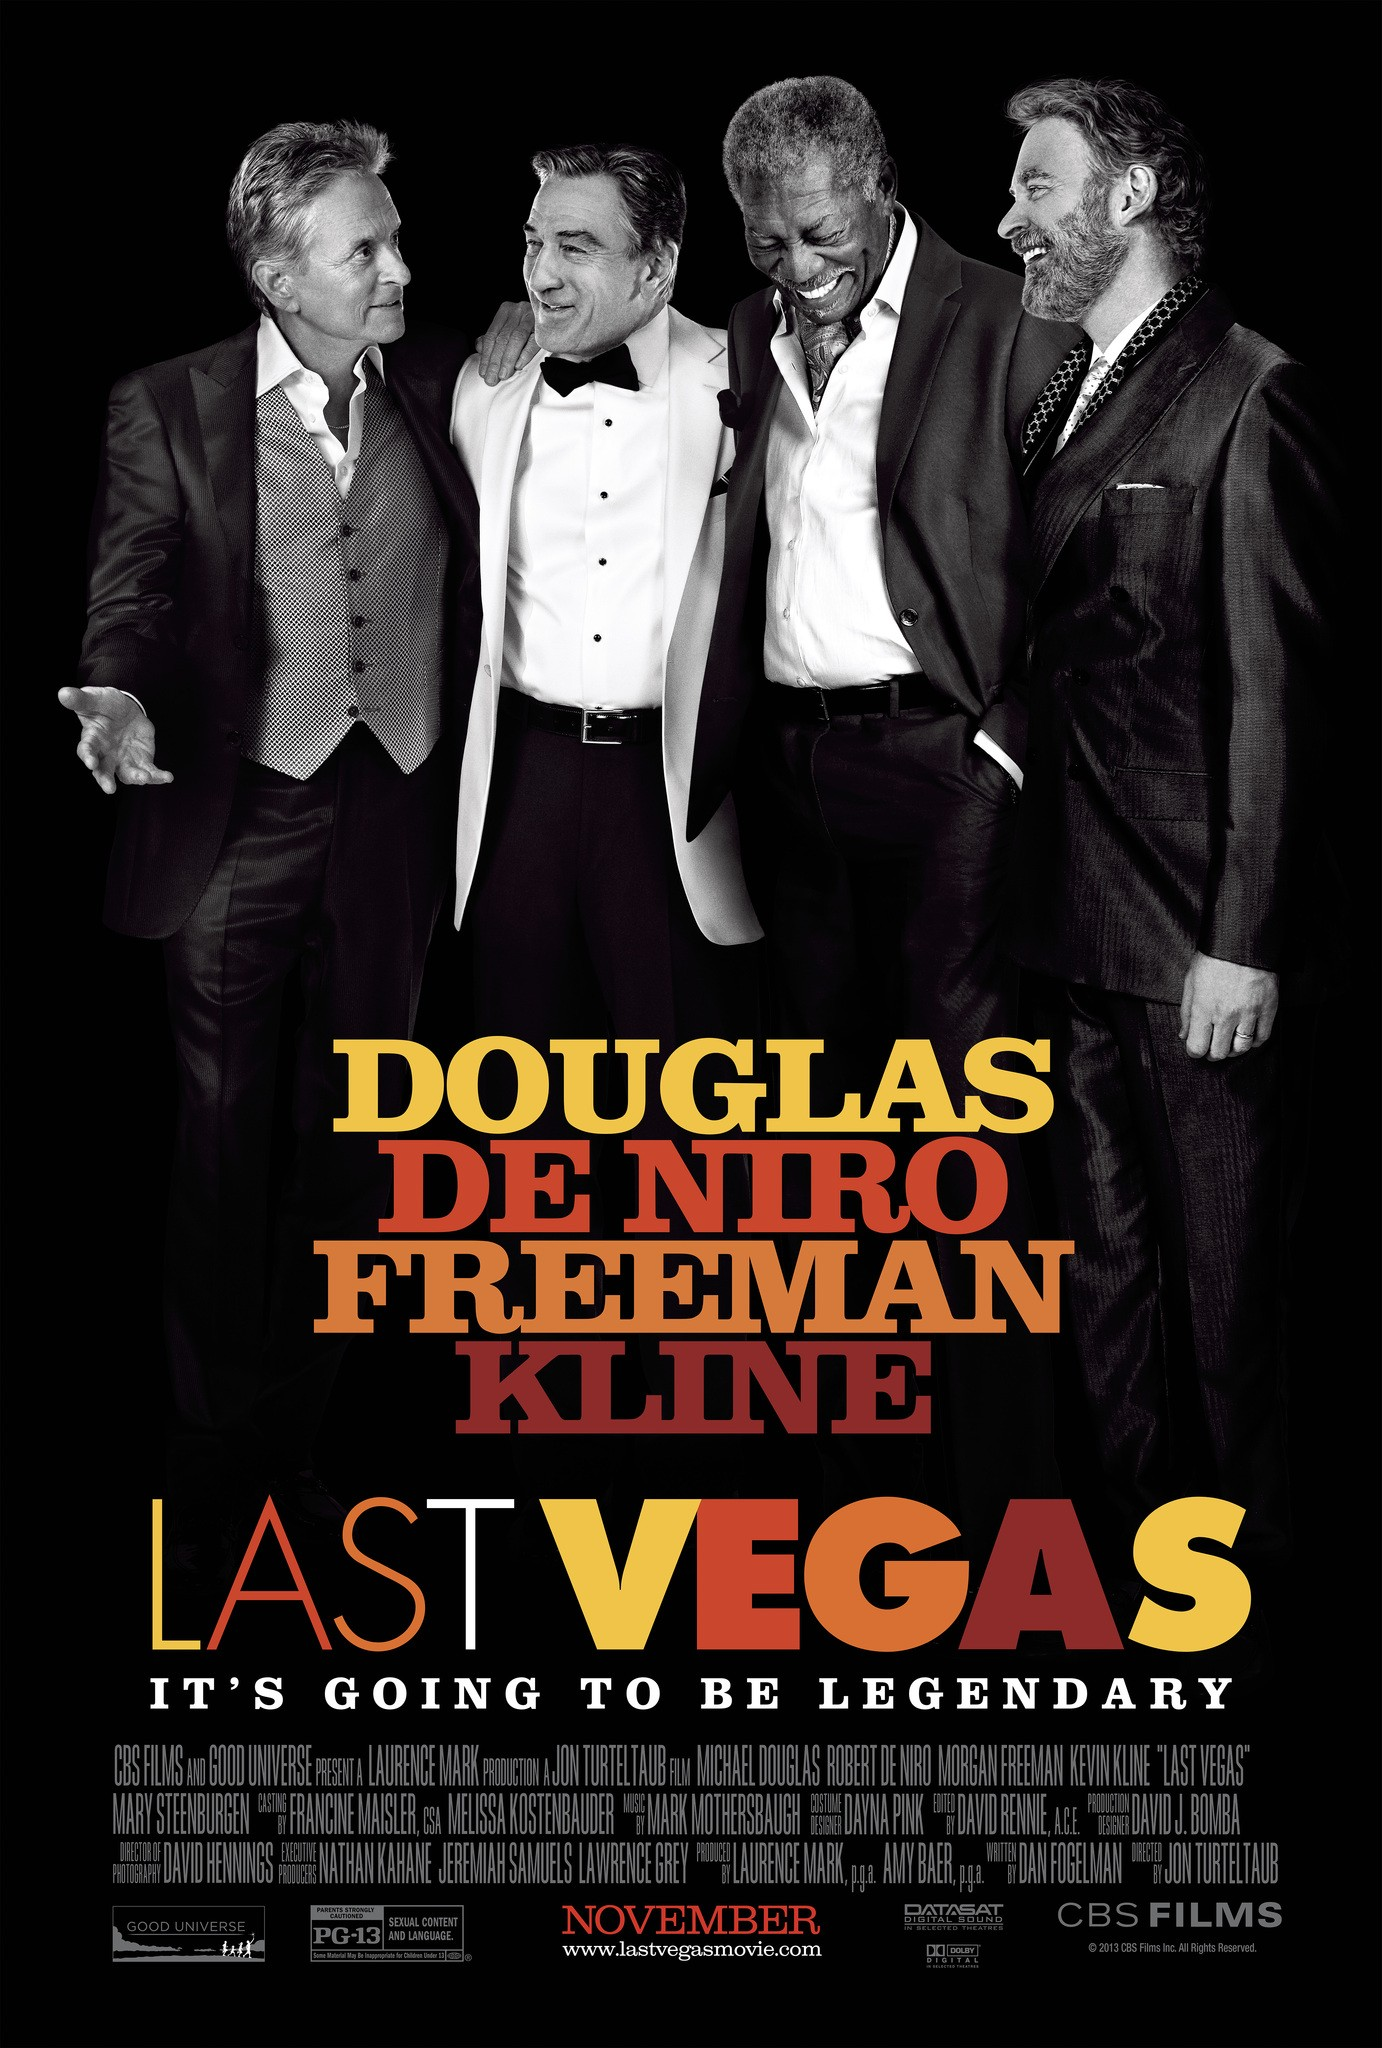 Last Vegas-Official Poster Banner PROMO POSTER-21AGOSTO2013